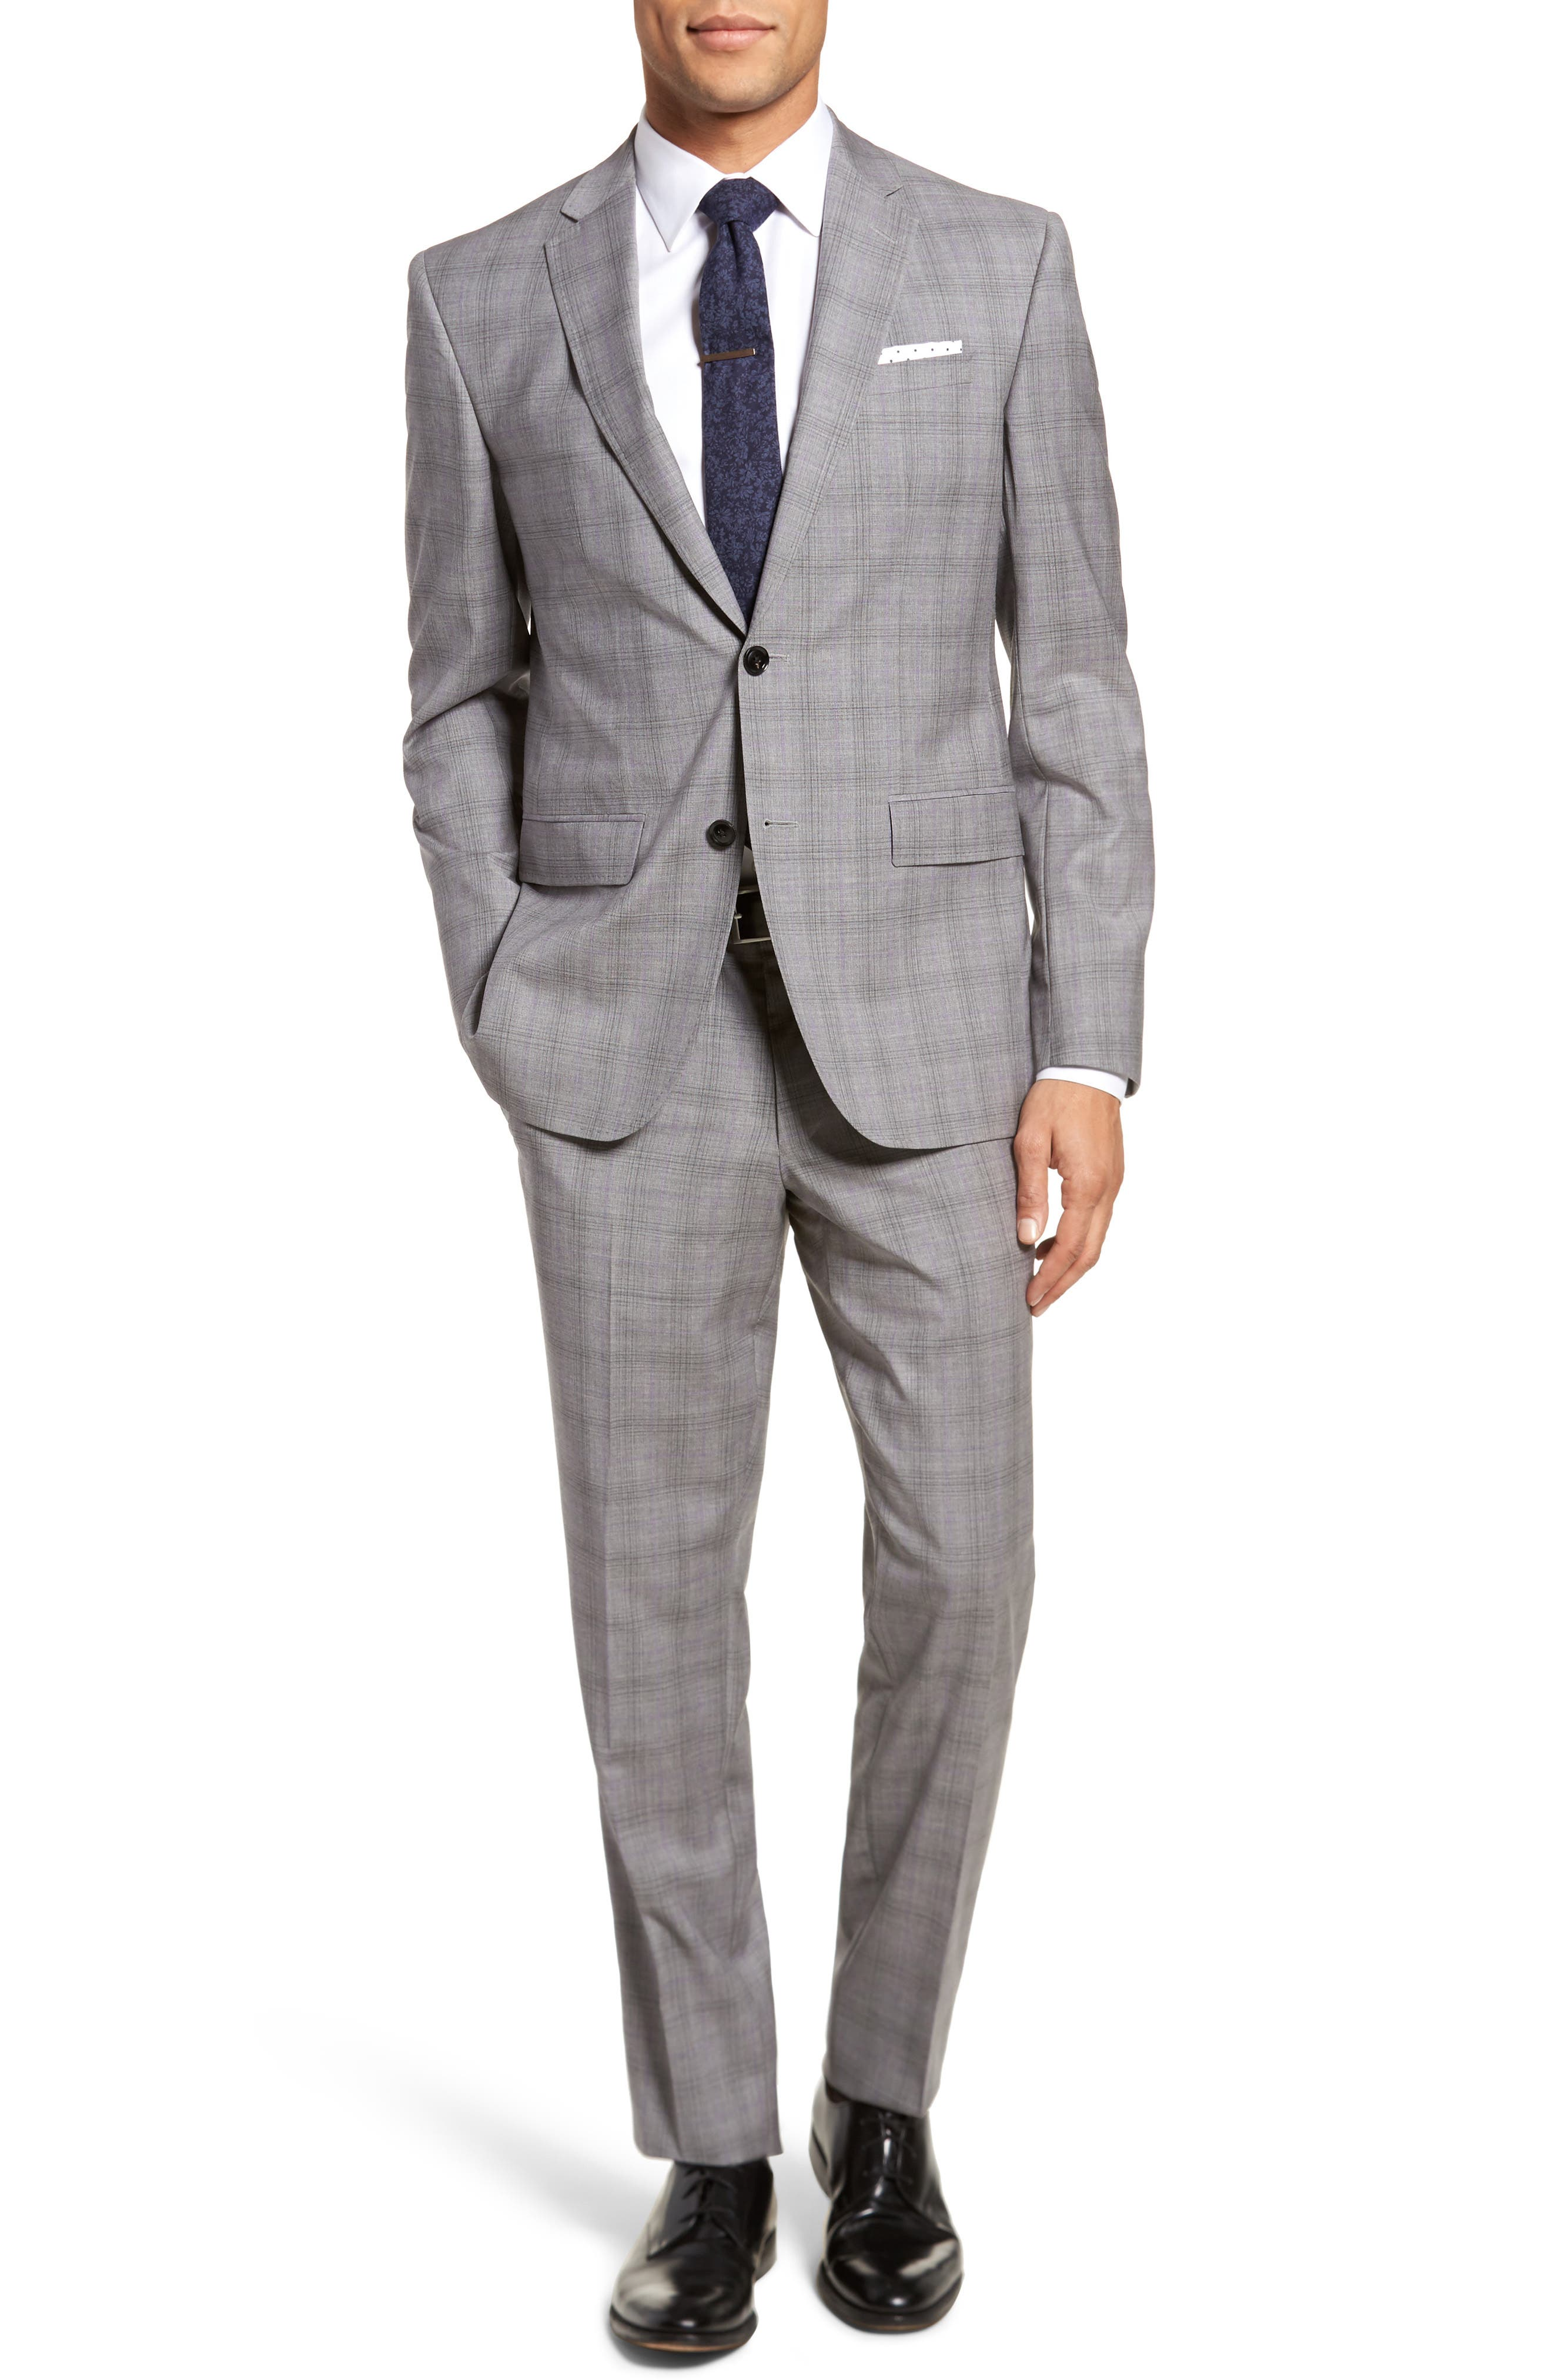 Jay Trim Fit Plaid Wool Suit,                             Main thumbnail 1, color,                             Light Grey